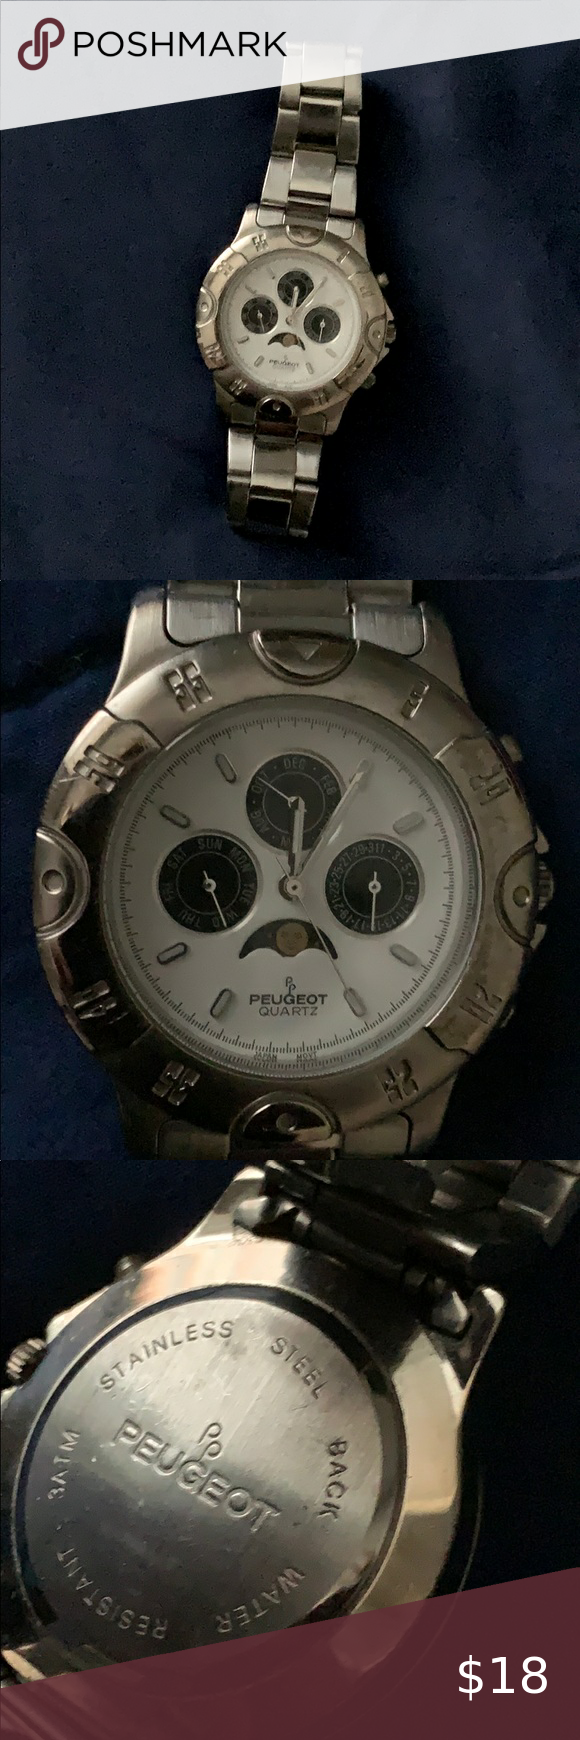 Peugeot Watch Mens Accessories Accessories Watches Accessories